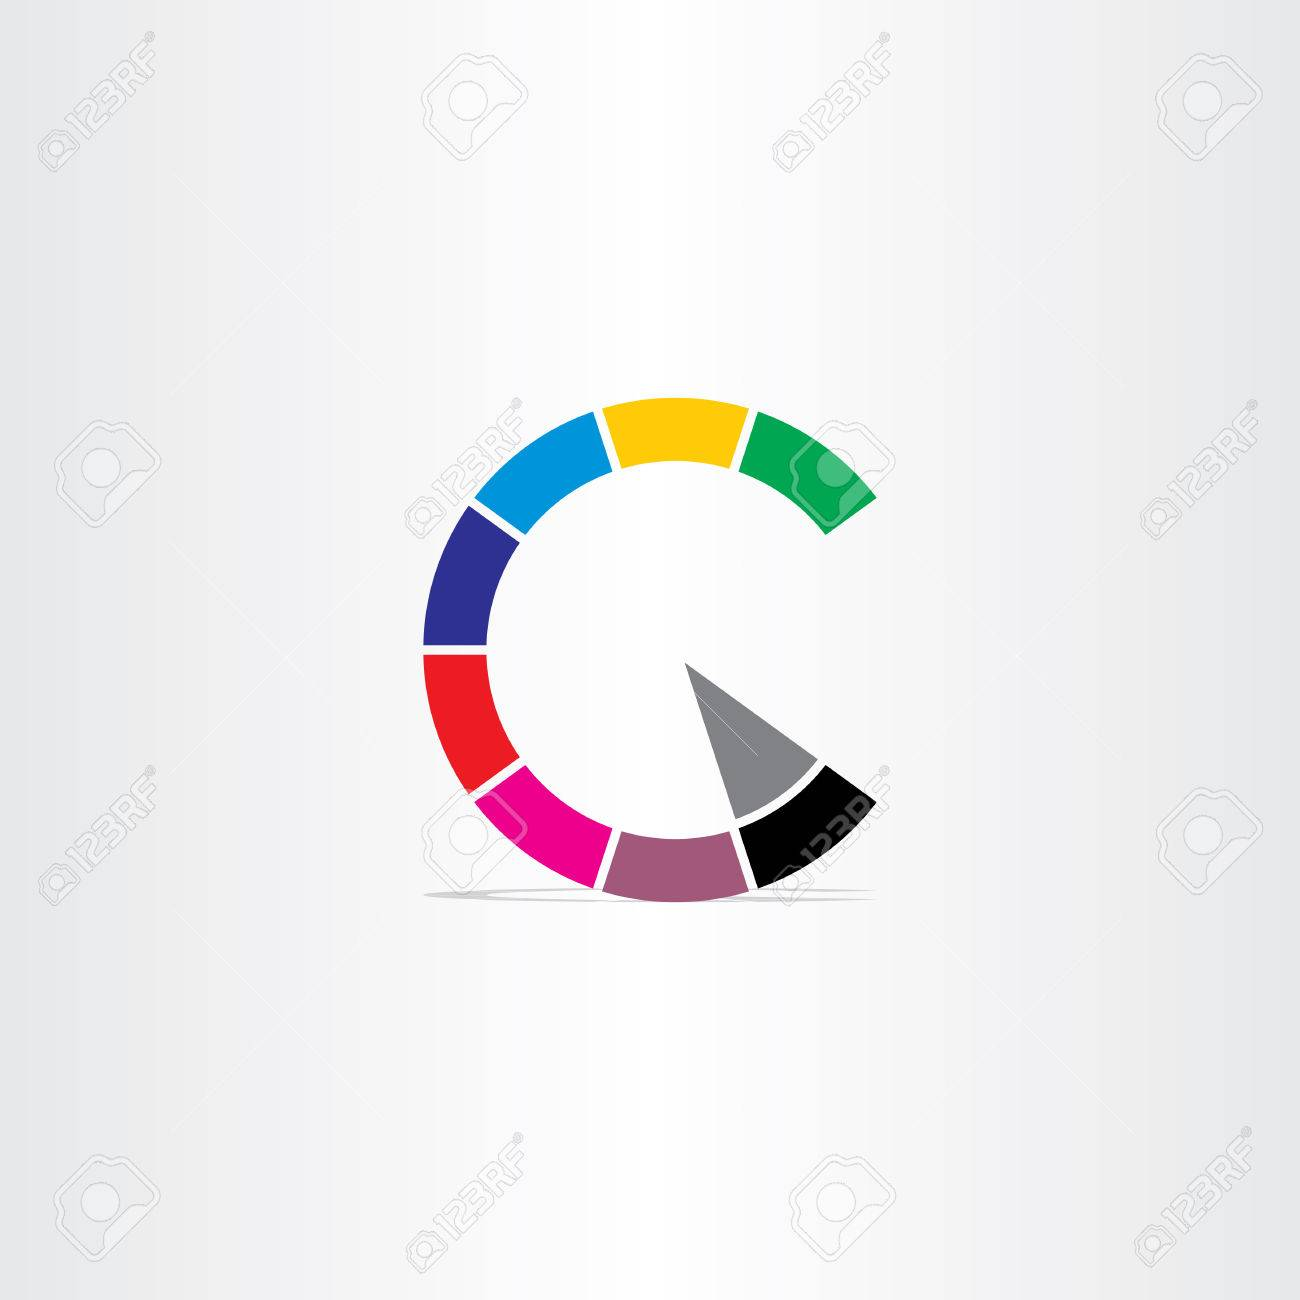 Letter c color copyright symbol icon royalty free cliparts vectors letter c color copyright symbol icon stock vector 40568951 biocorpaavc Images